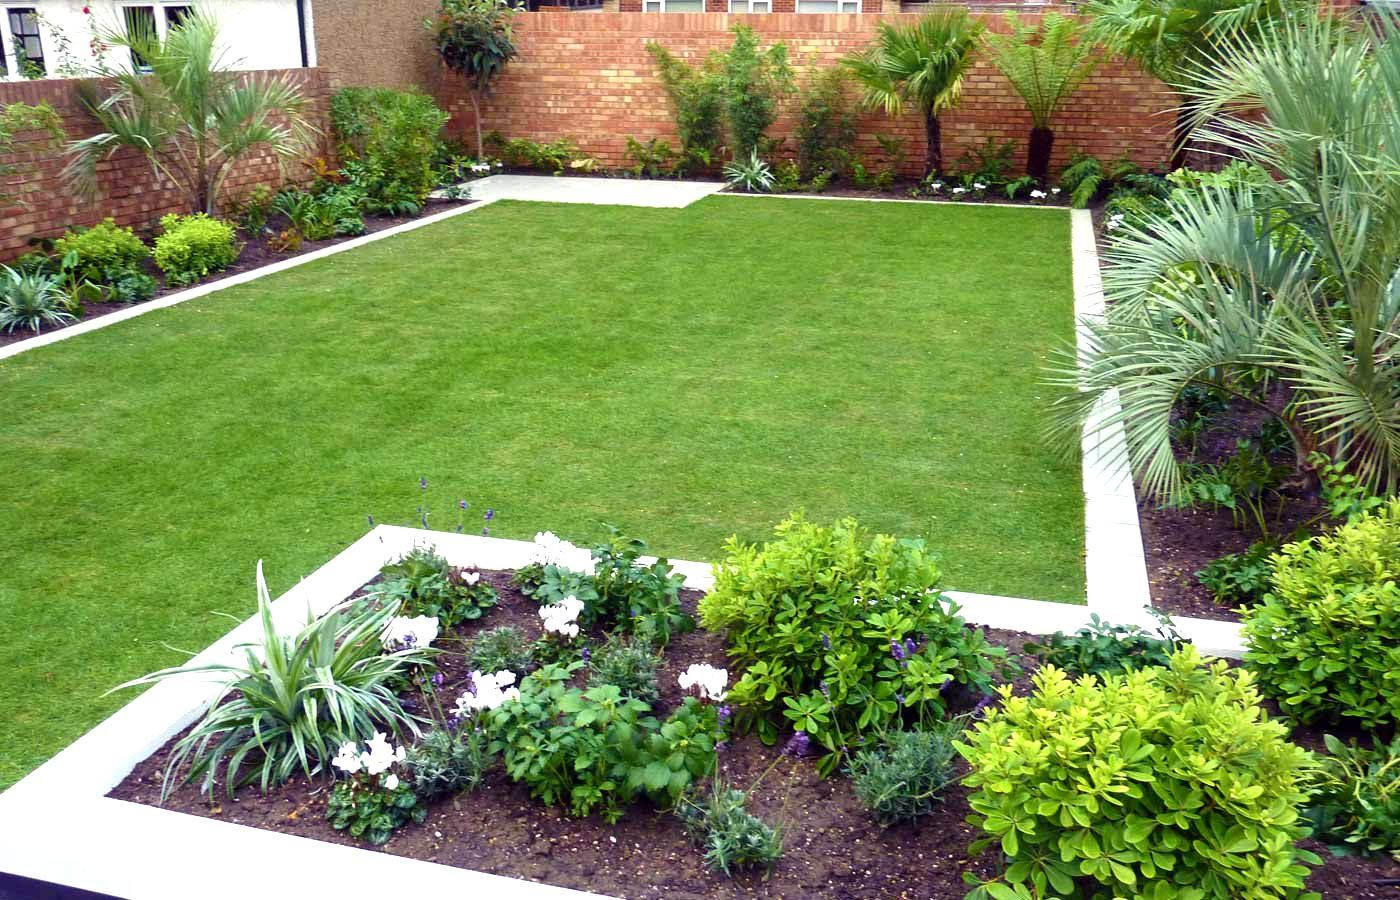 Simple garden designs no fret small garden design for Como arreglar un jardin pequeno